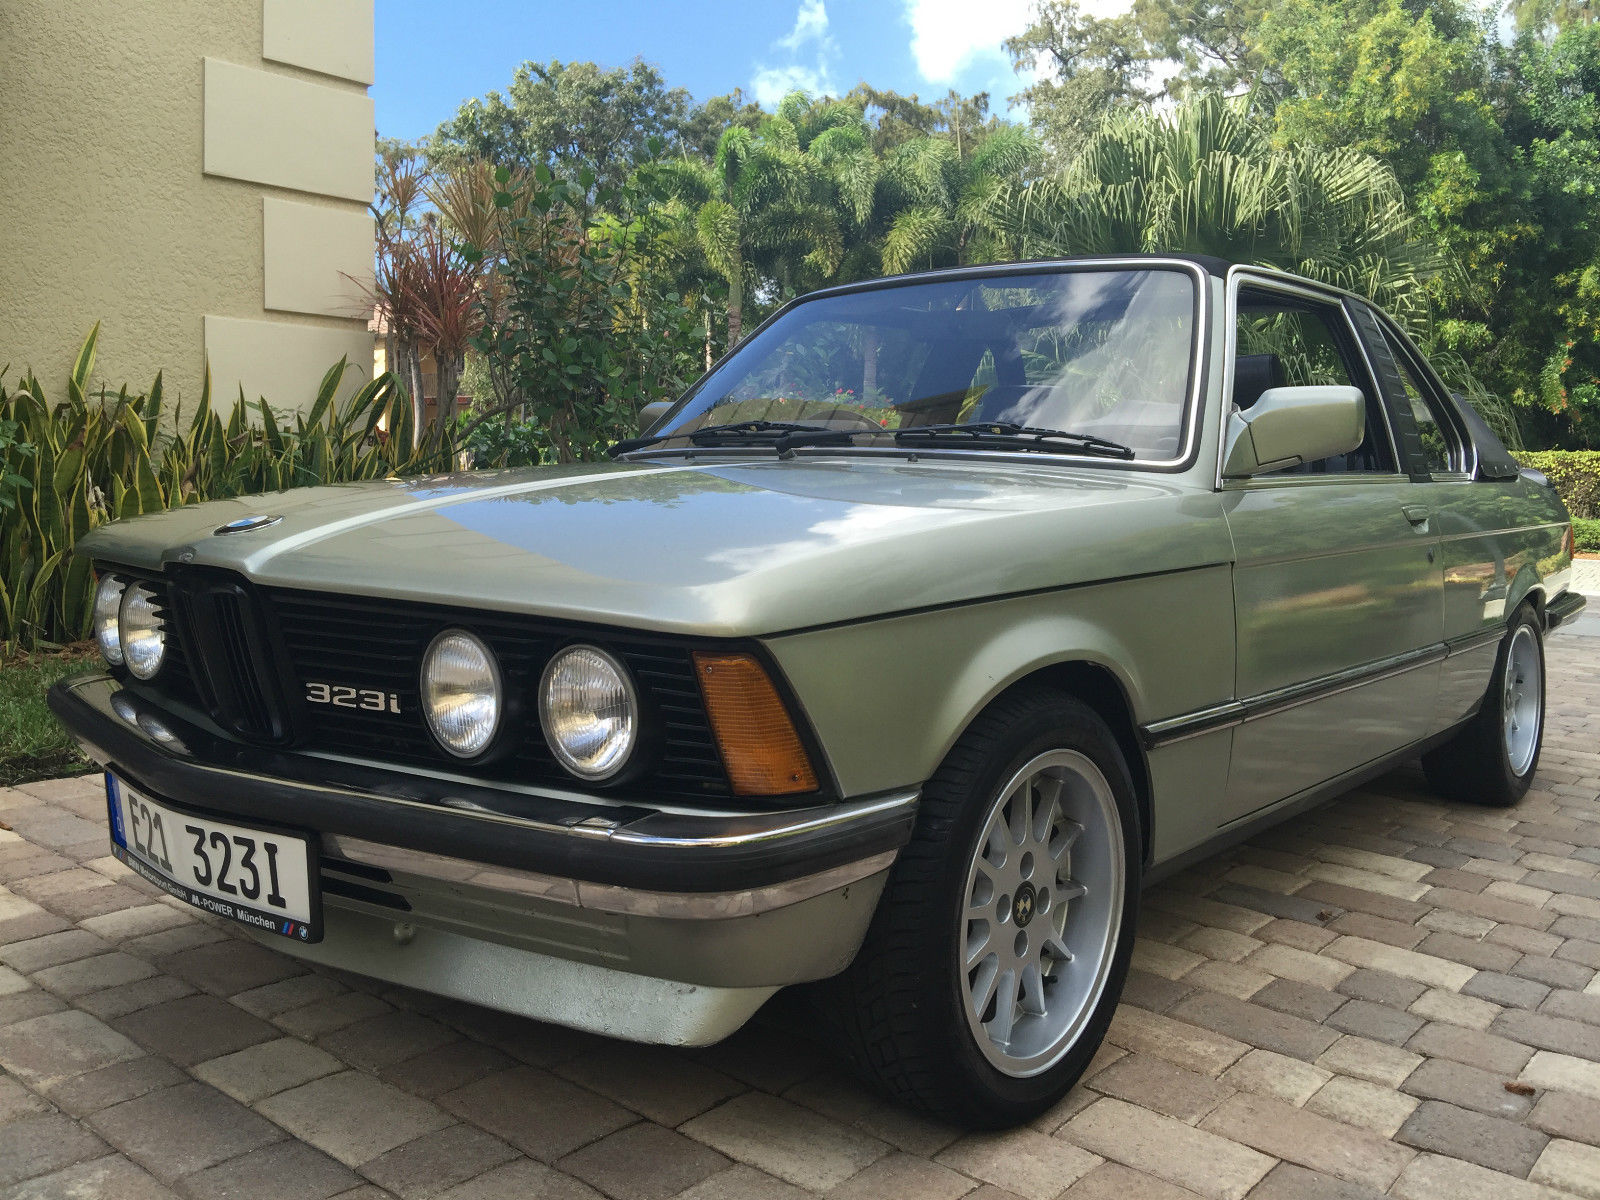 baurspotting rhd 1982 bmw e21 323i baur in florida. Black Bedroom Furniture Sets. Home Design Ideas